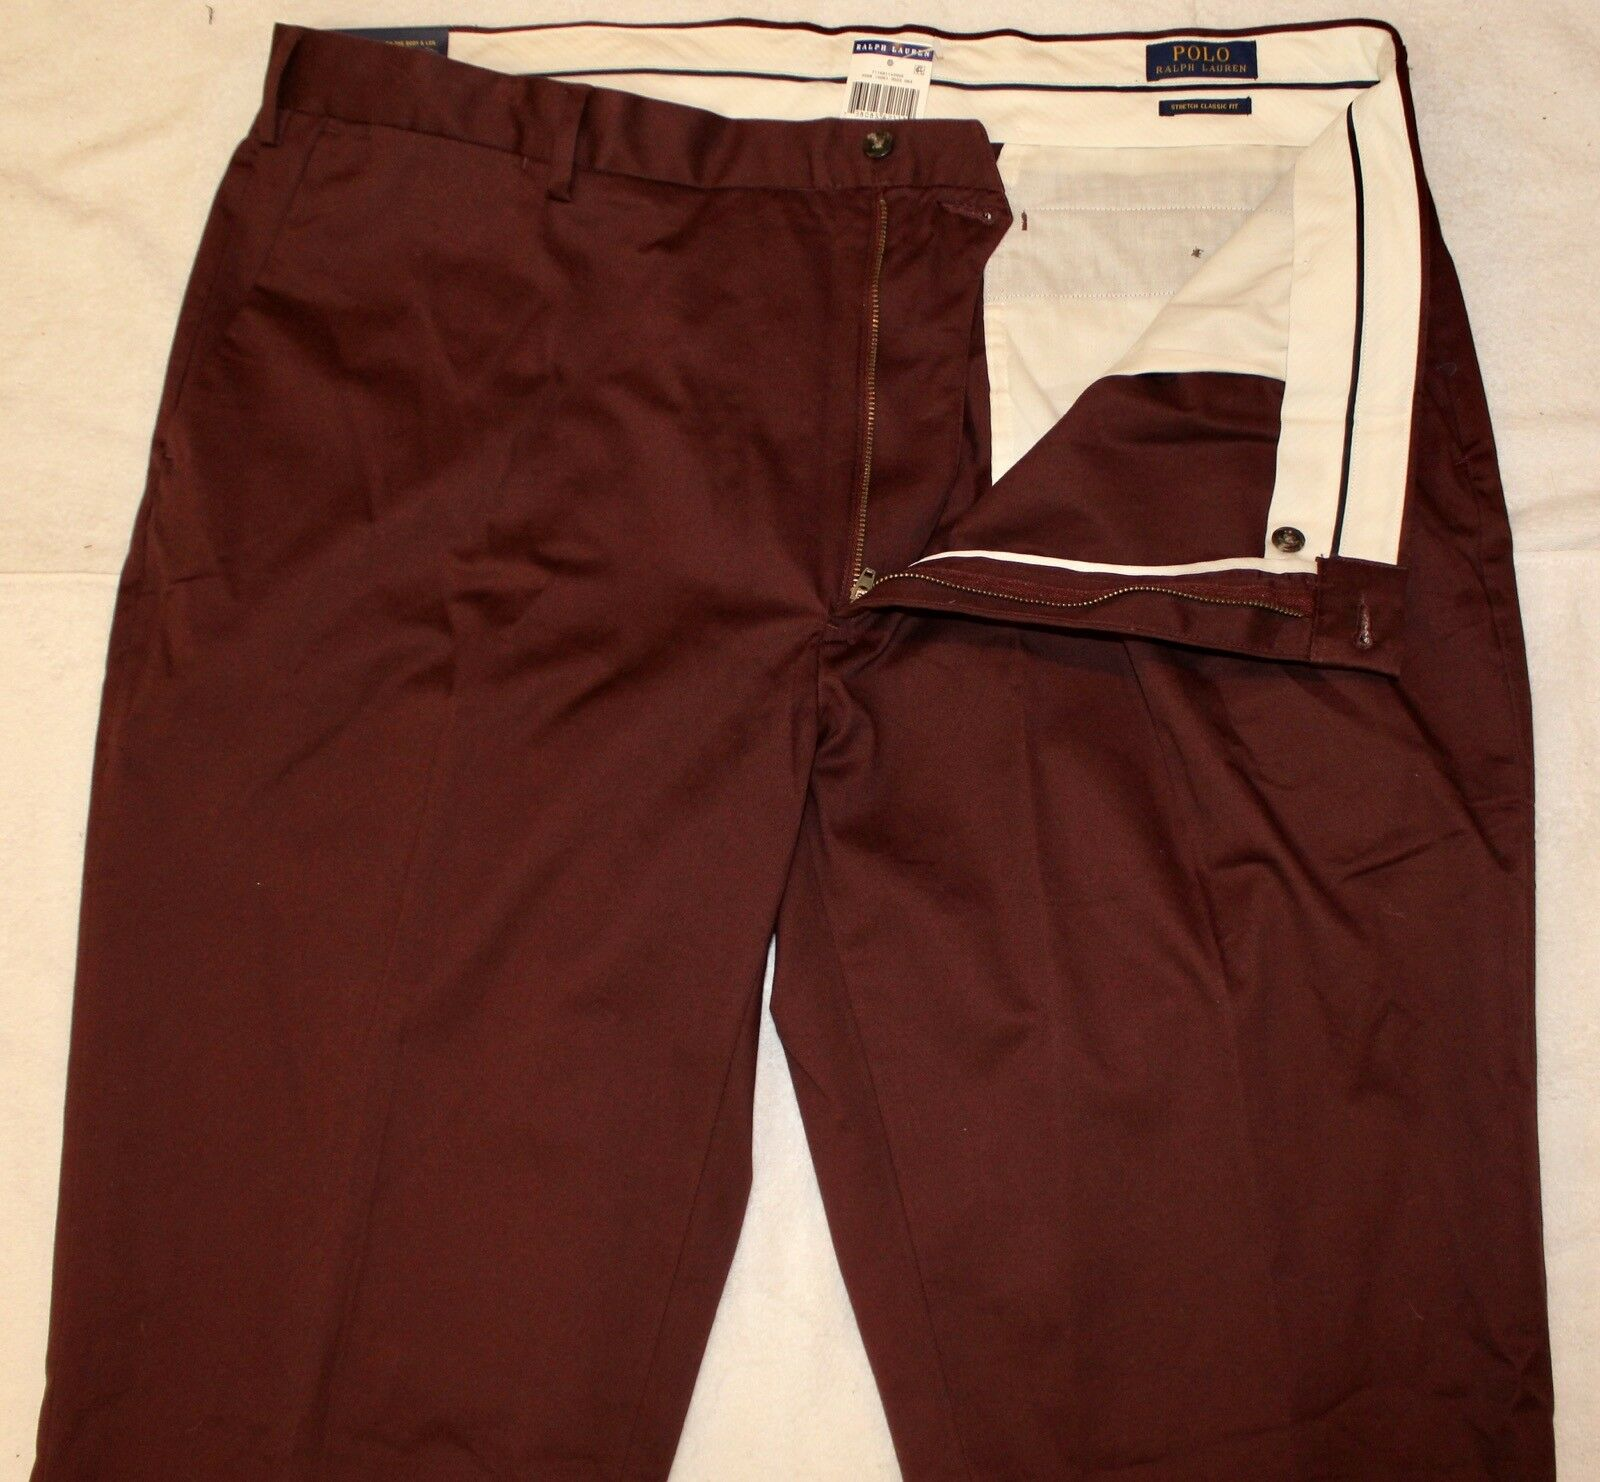 Polo Ralph Lauren Big and Tall Mens Maroon Flat-Front Dress Pants NWT 42 T x 38